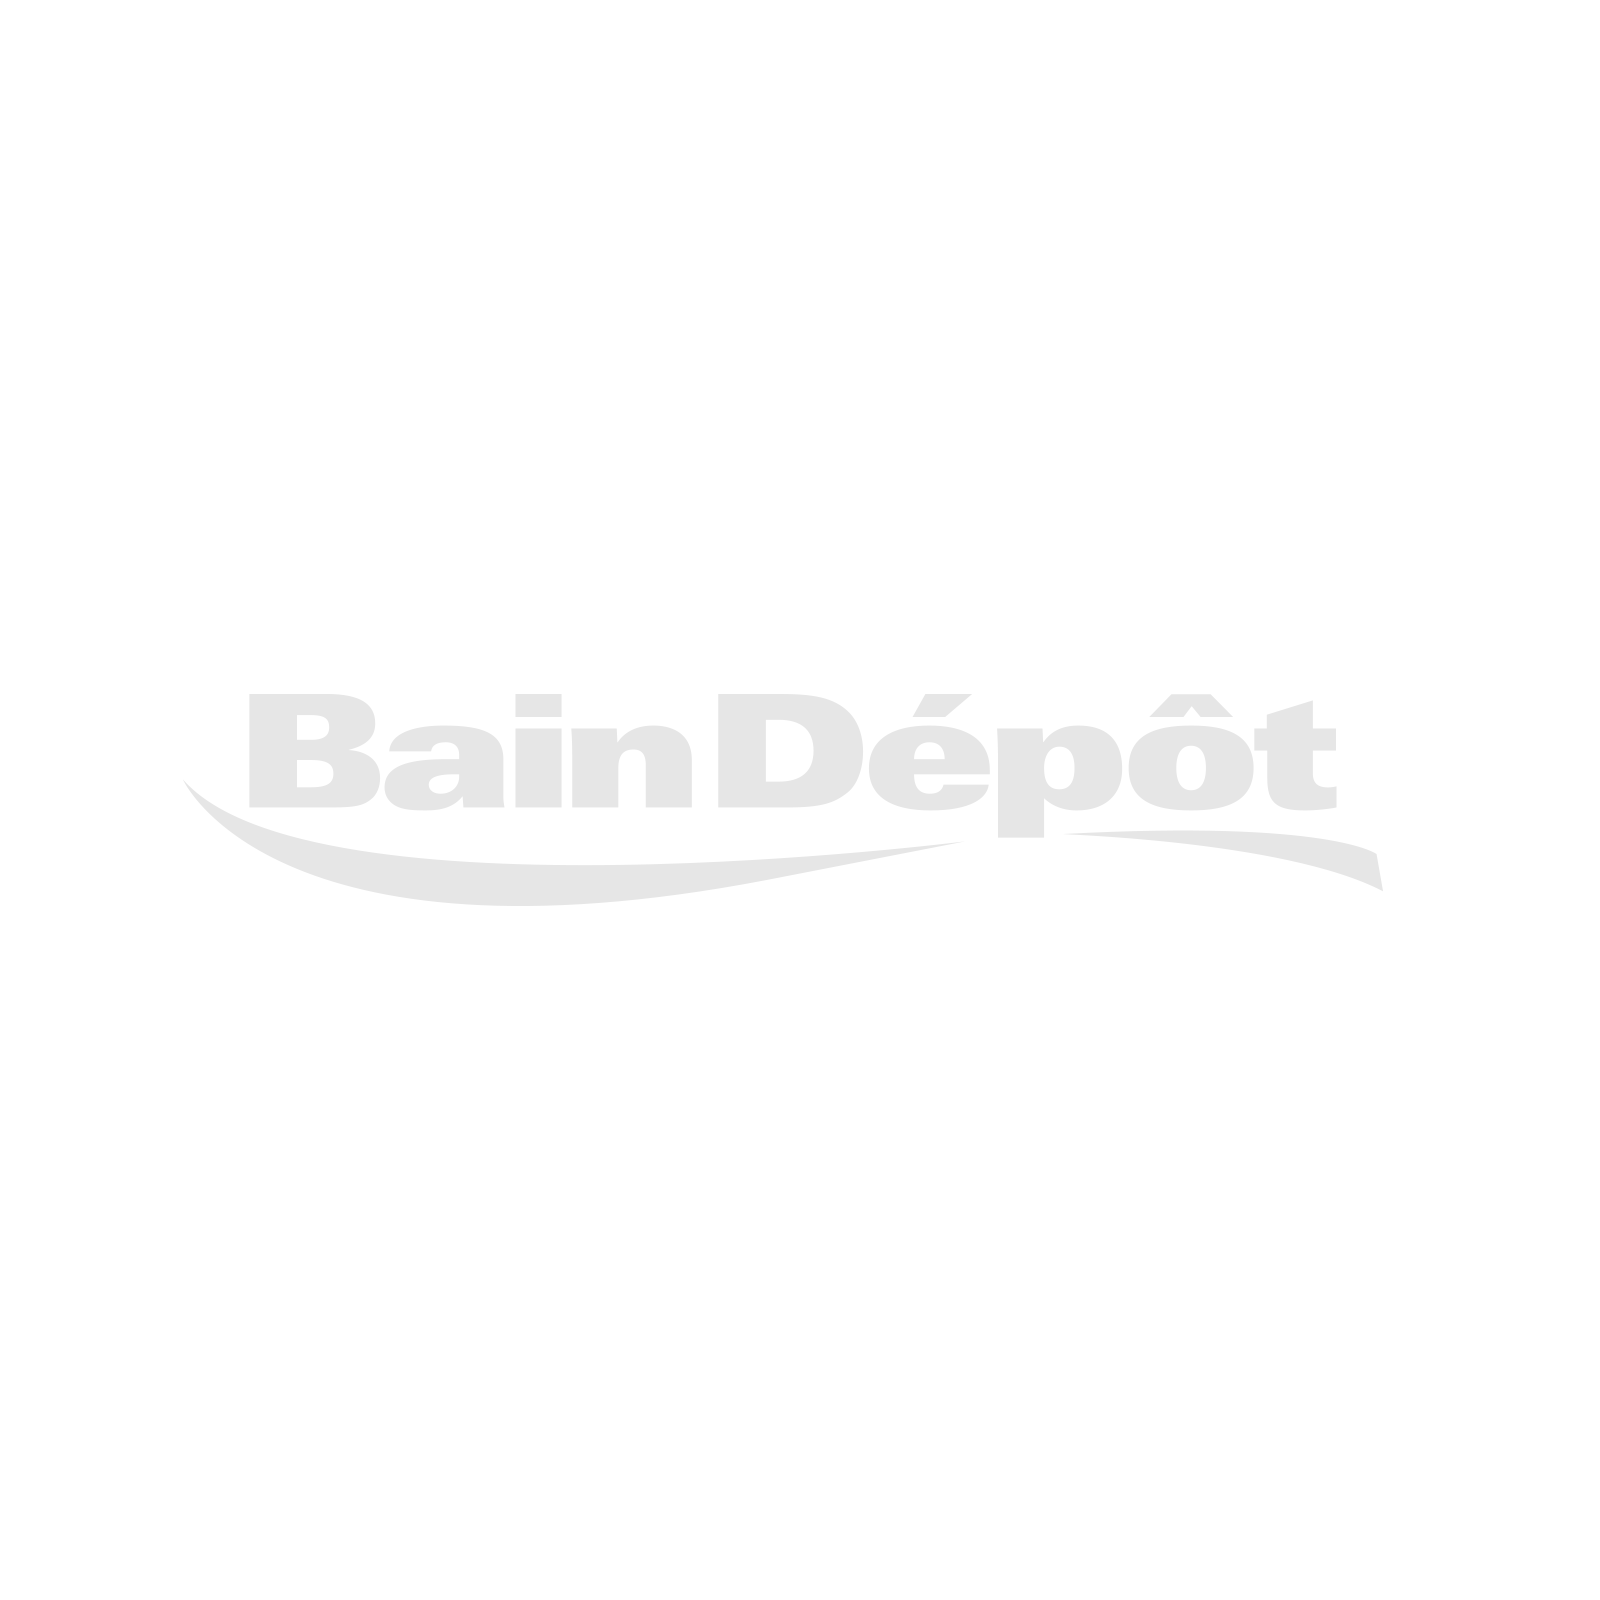 "38"" x 38"" Round shower kit with matte black door, tile effect walls, base and glass shelves"